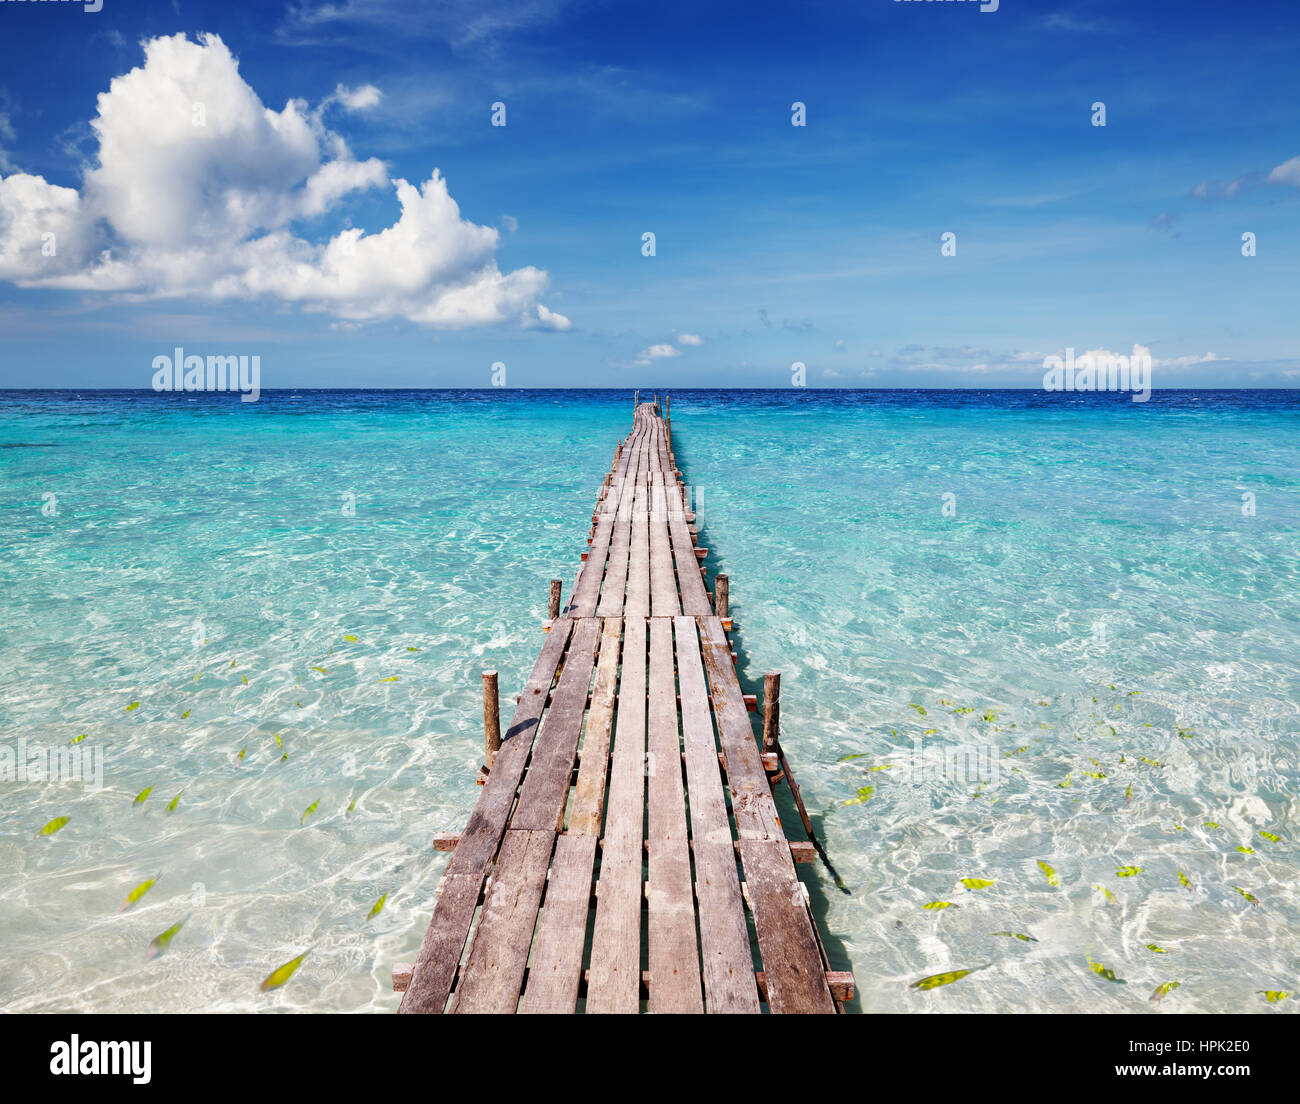 Wooden pier on a tropical island, clear sea and blue sky - Stock Image